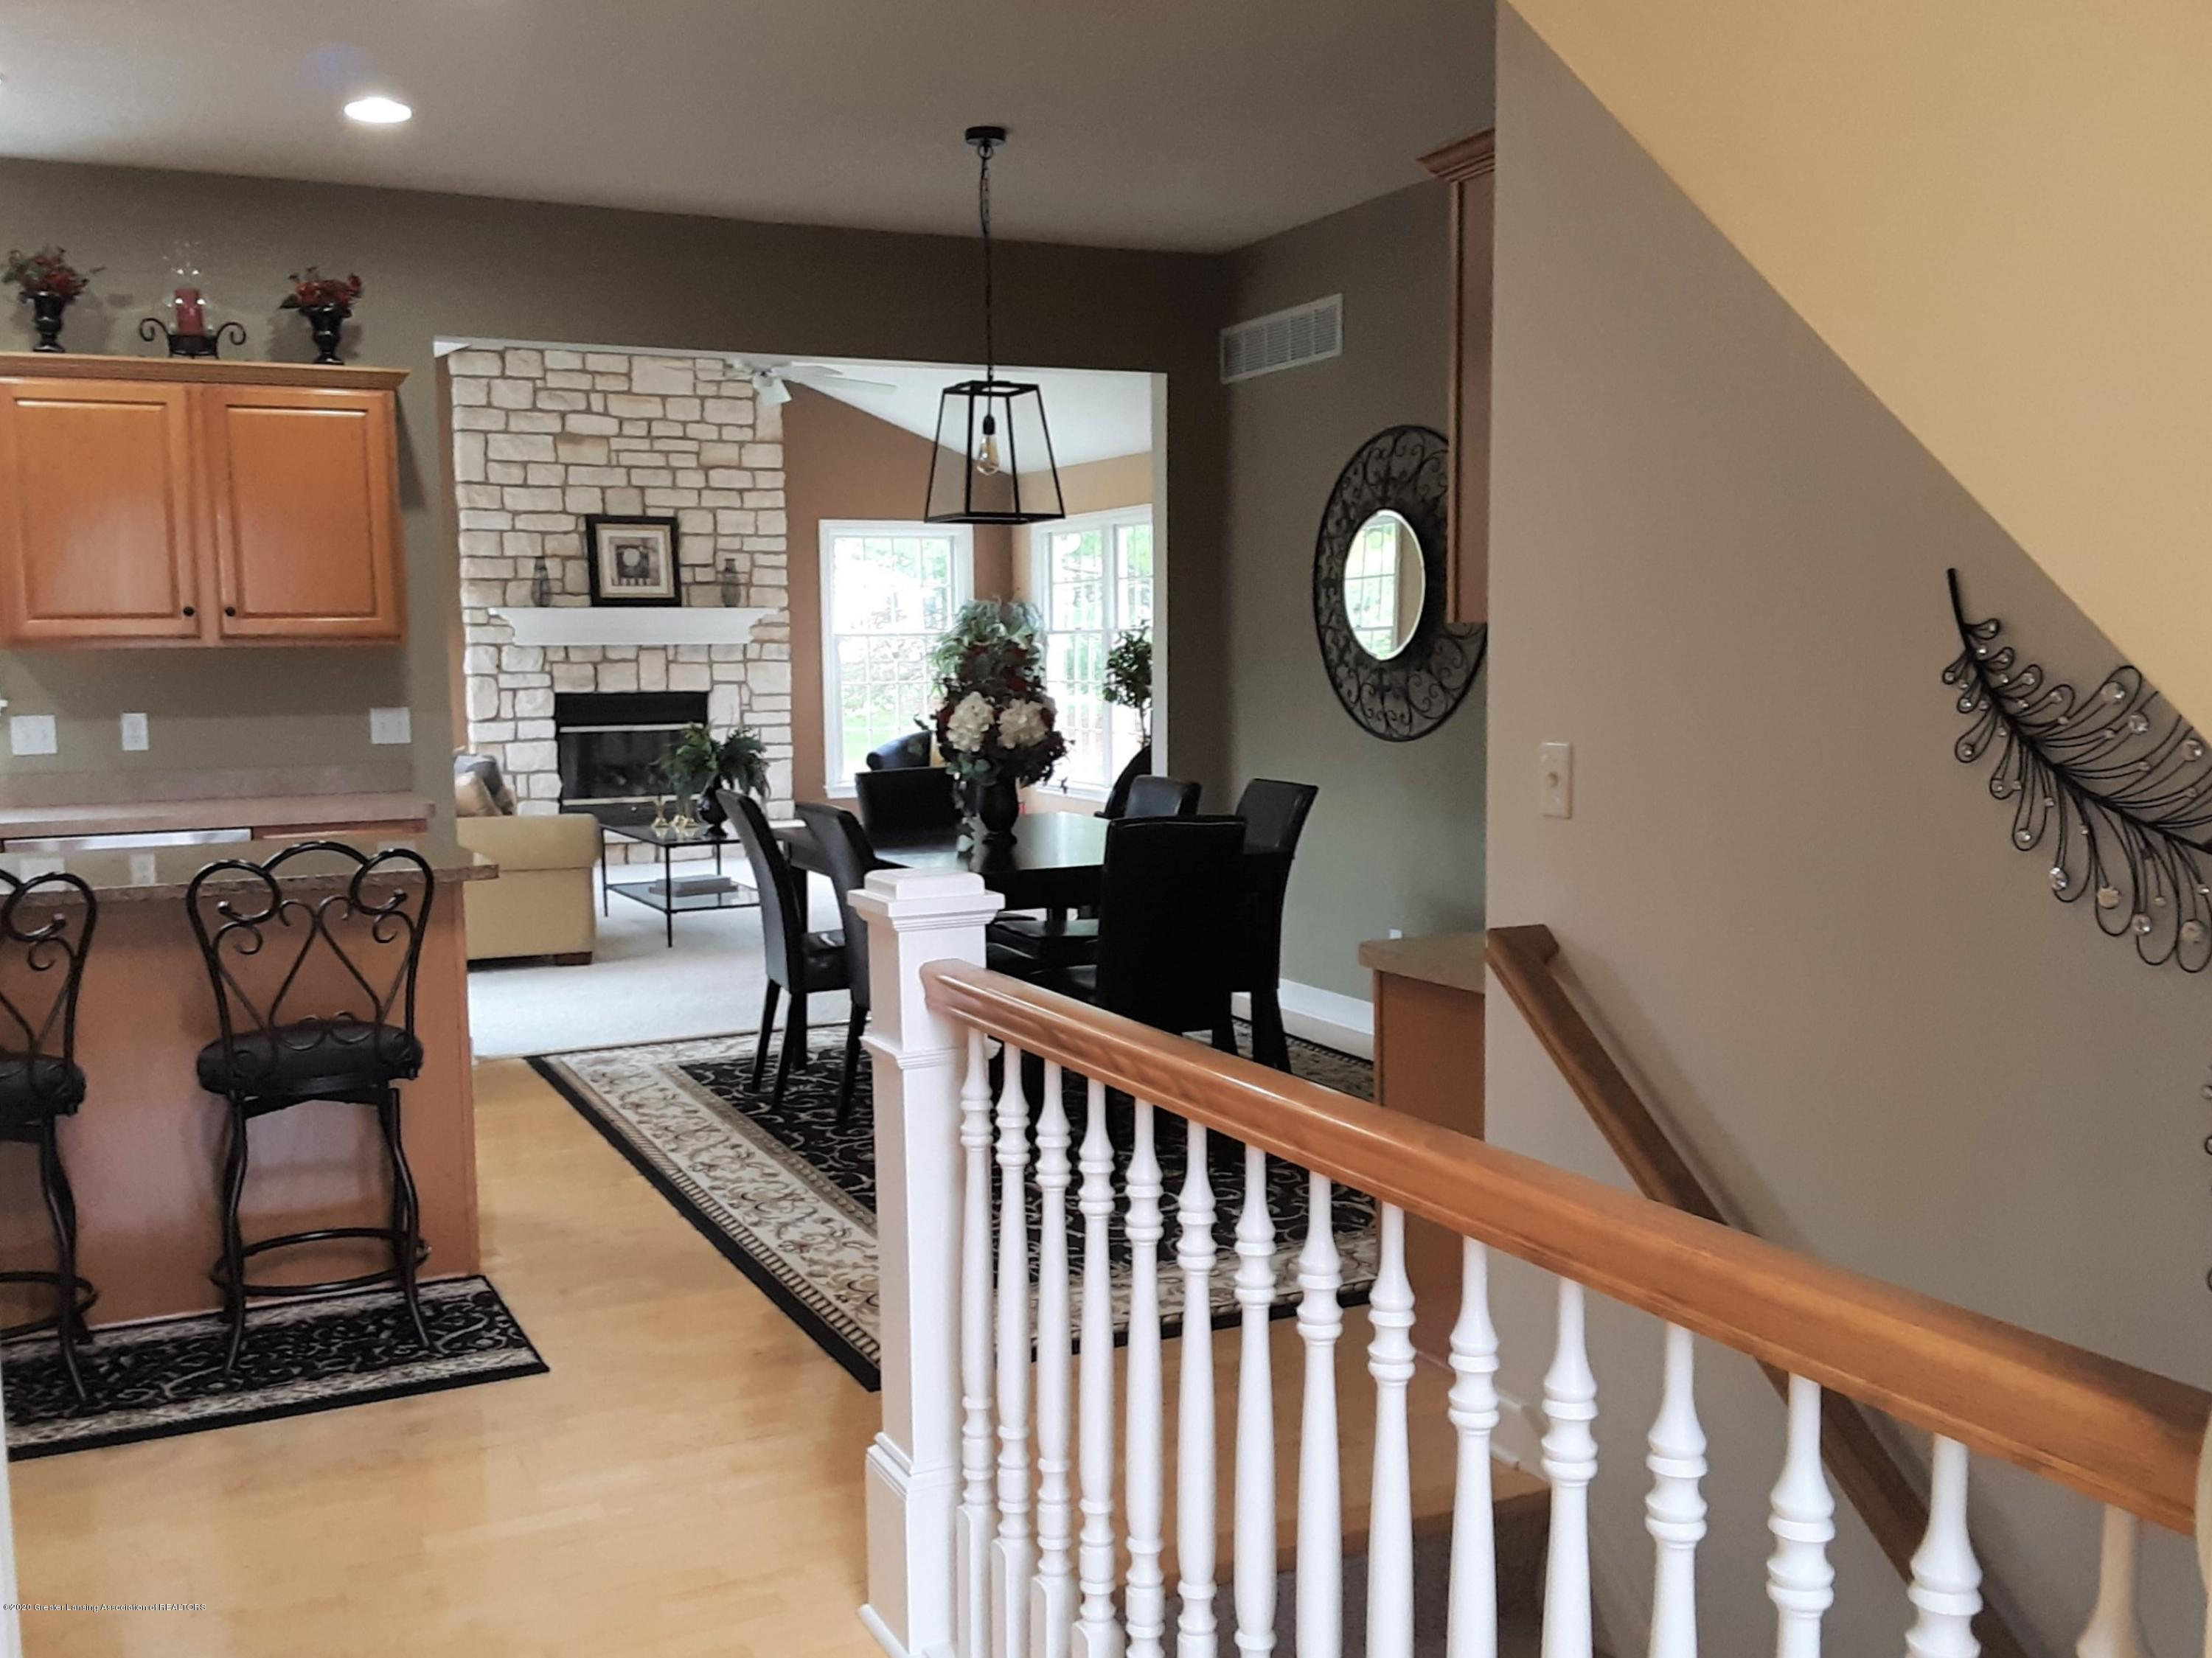 13142 Blaisdell Dr - 5. View from Foyer into Kitchen, Informa - 5